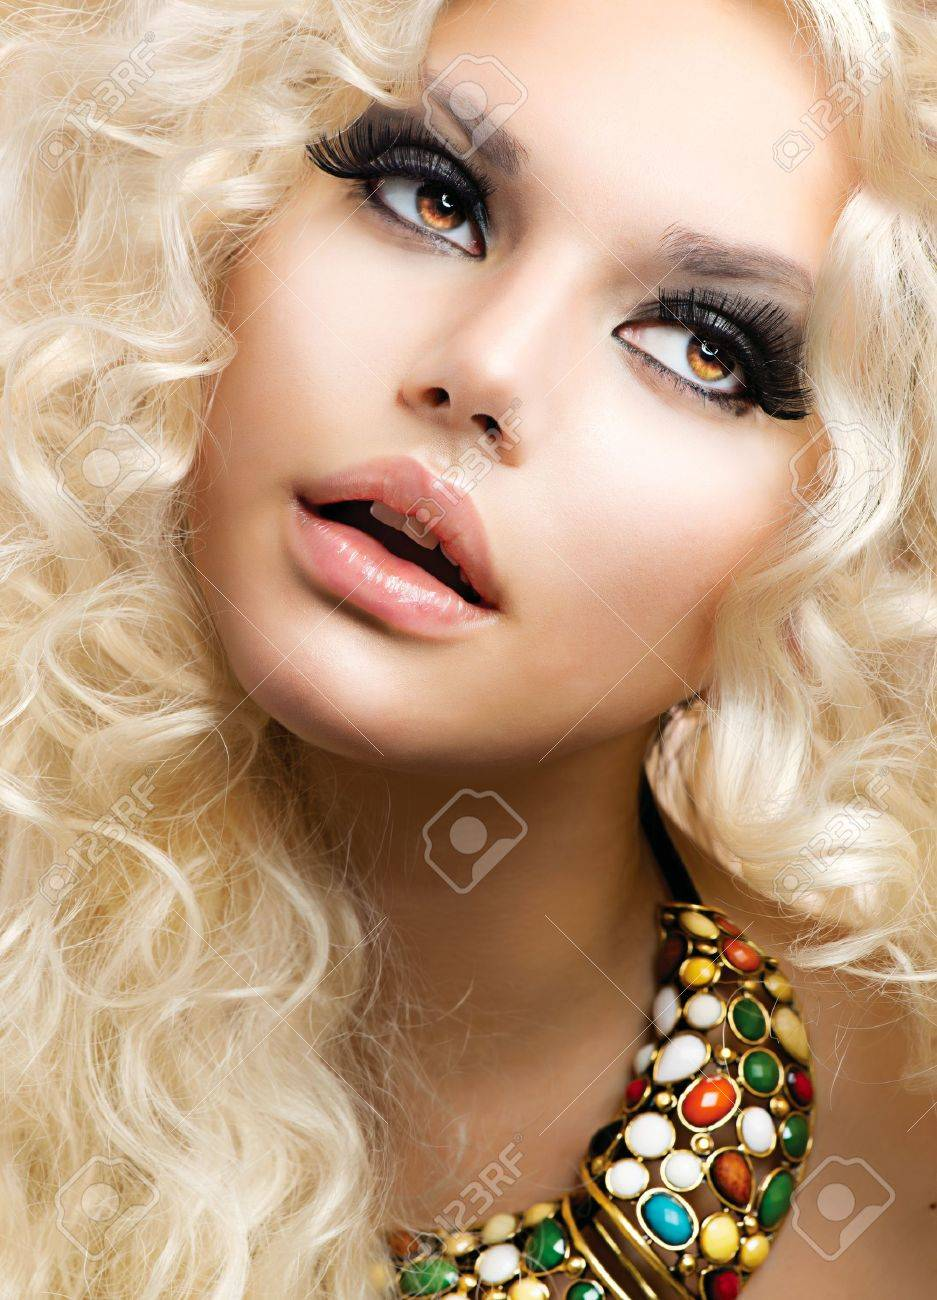 Beautiful Girl with Curly Blond Hair Stock Photo - 17383879